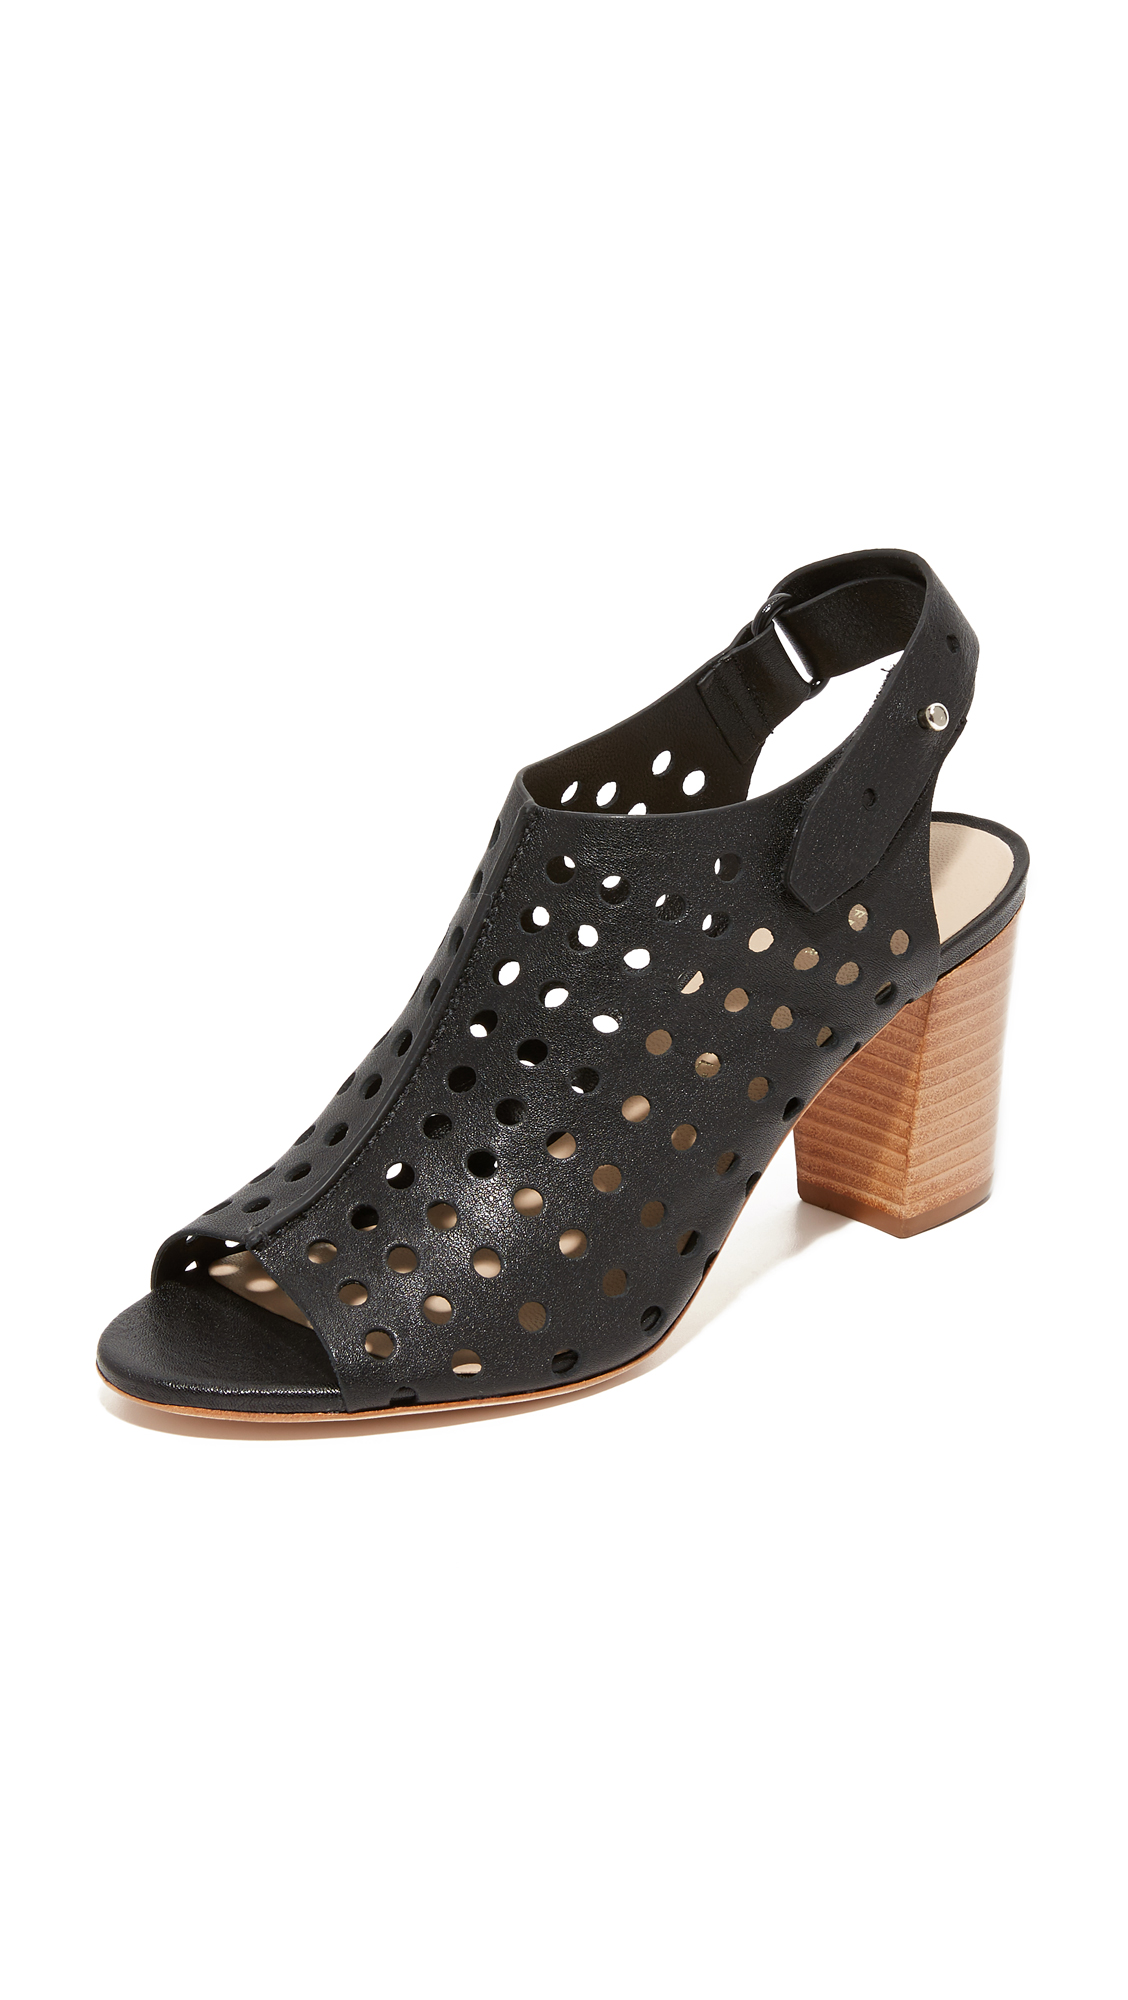 Loeffler Randall Alix Perforated Sandals - Black